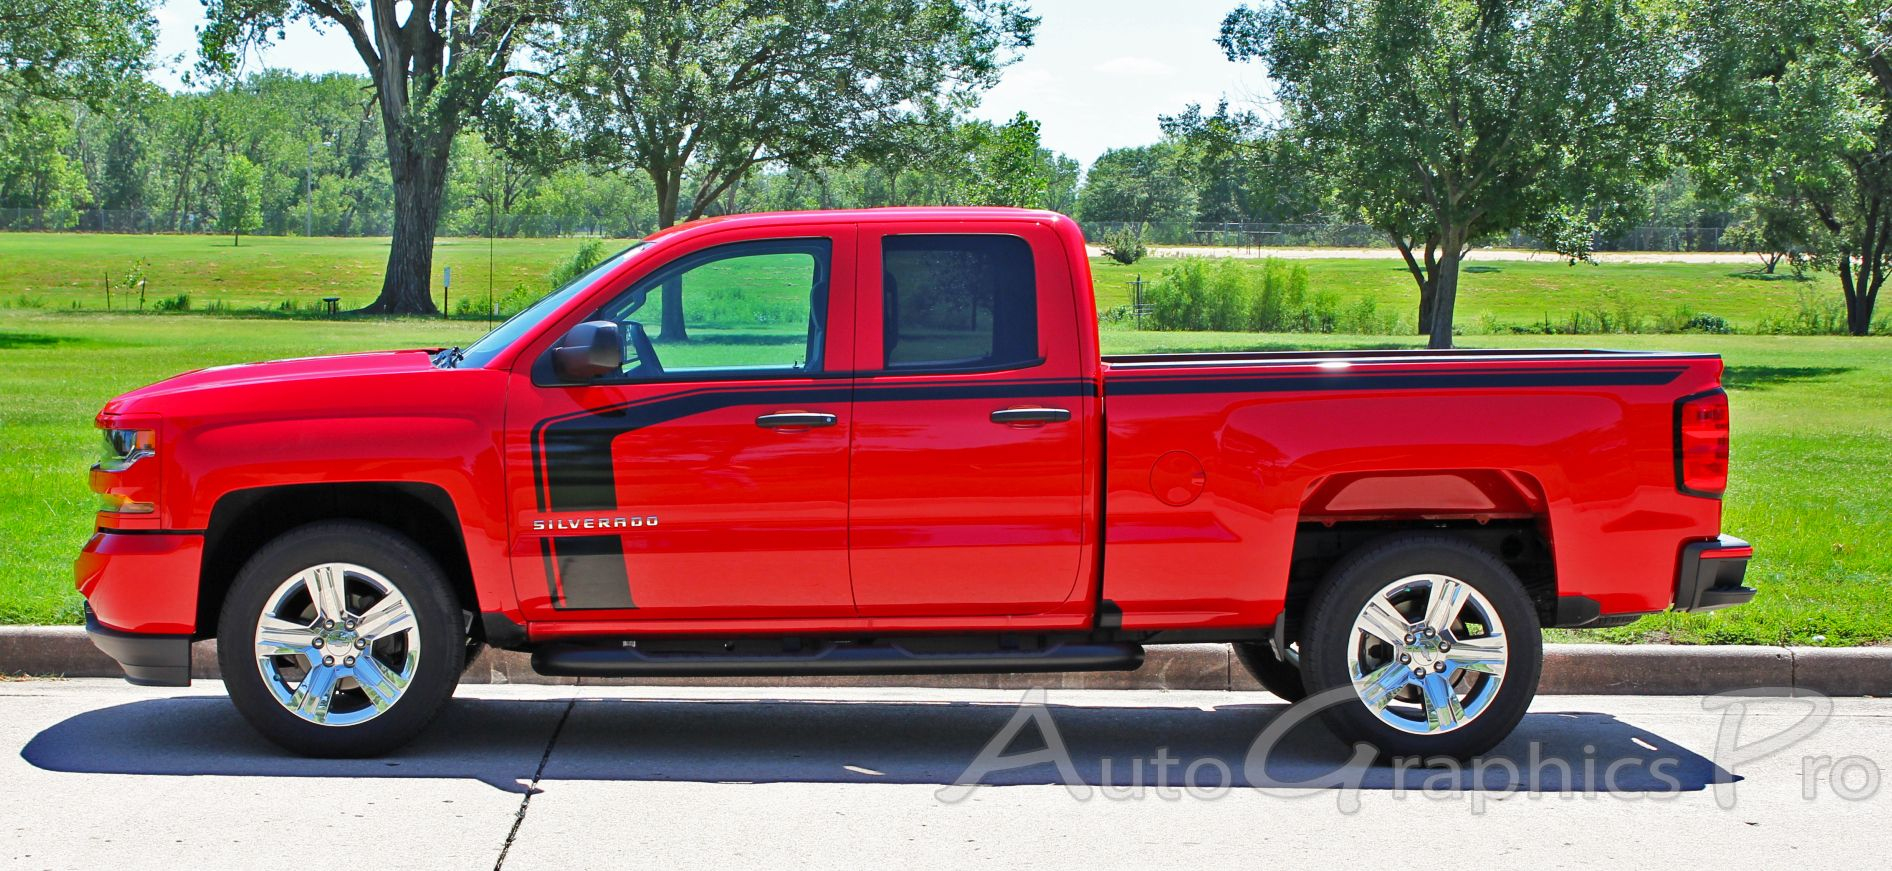 2016 2017 chevy silverado special edition rally style flow truck hood racing stripes